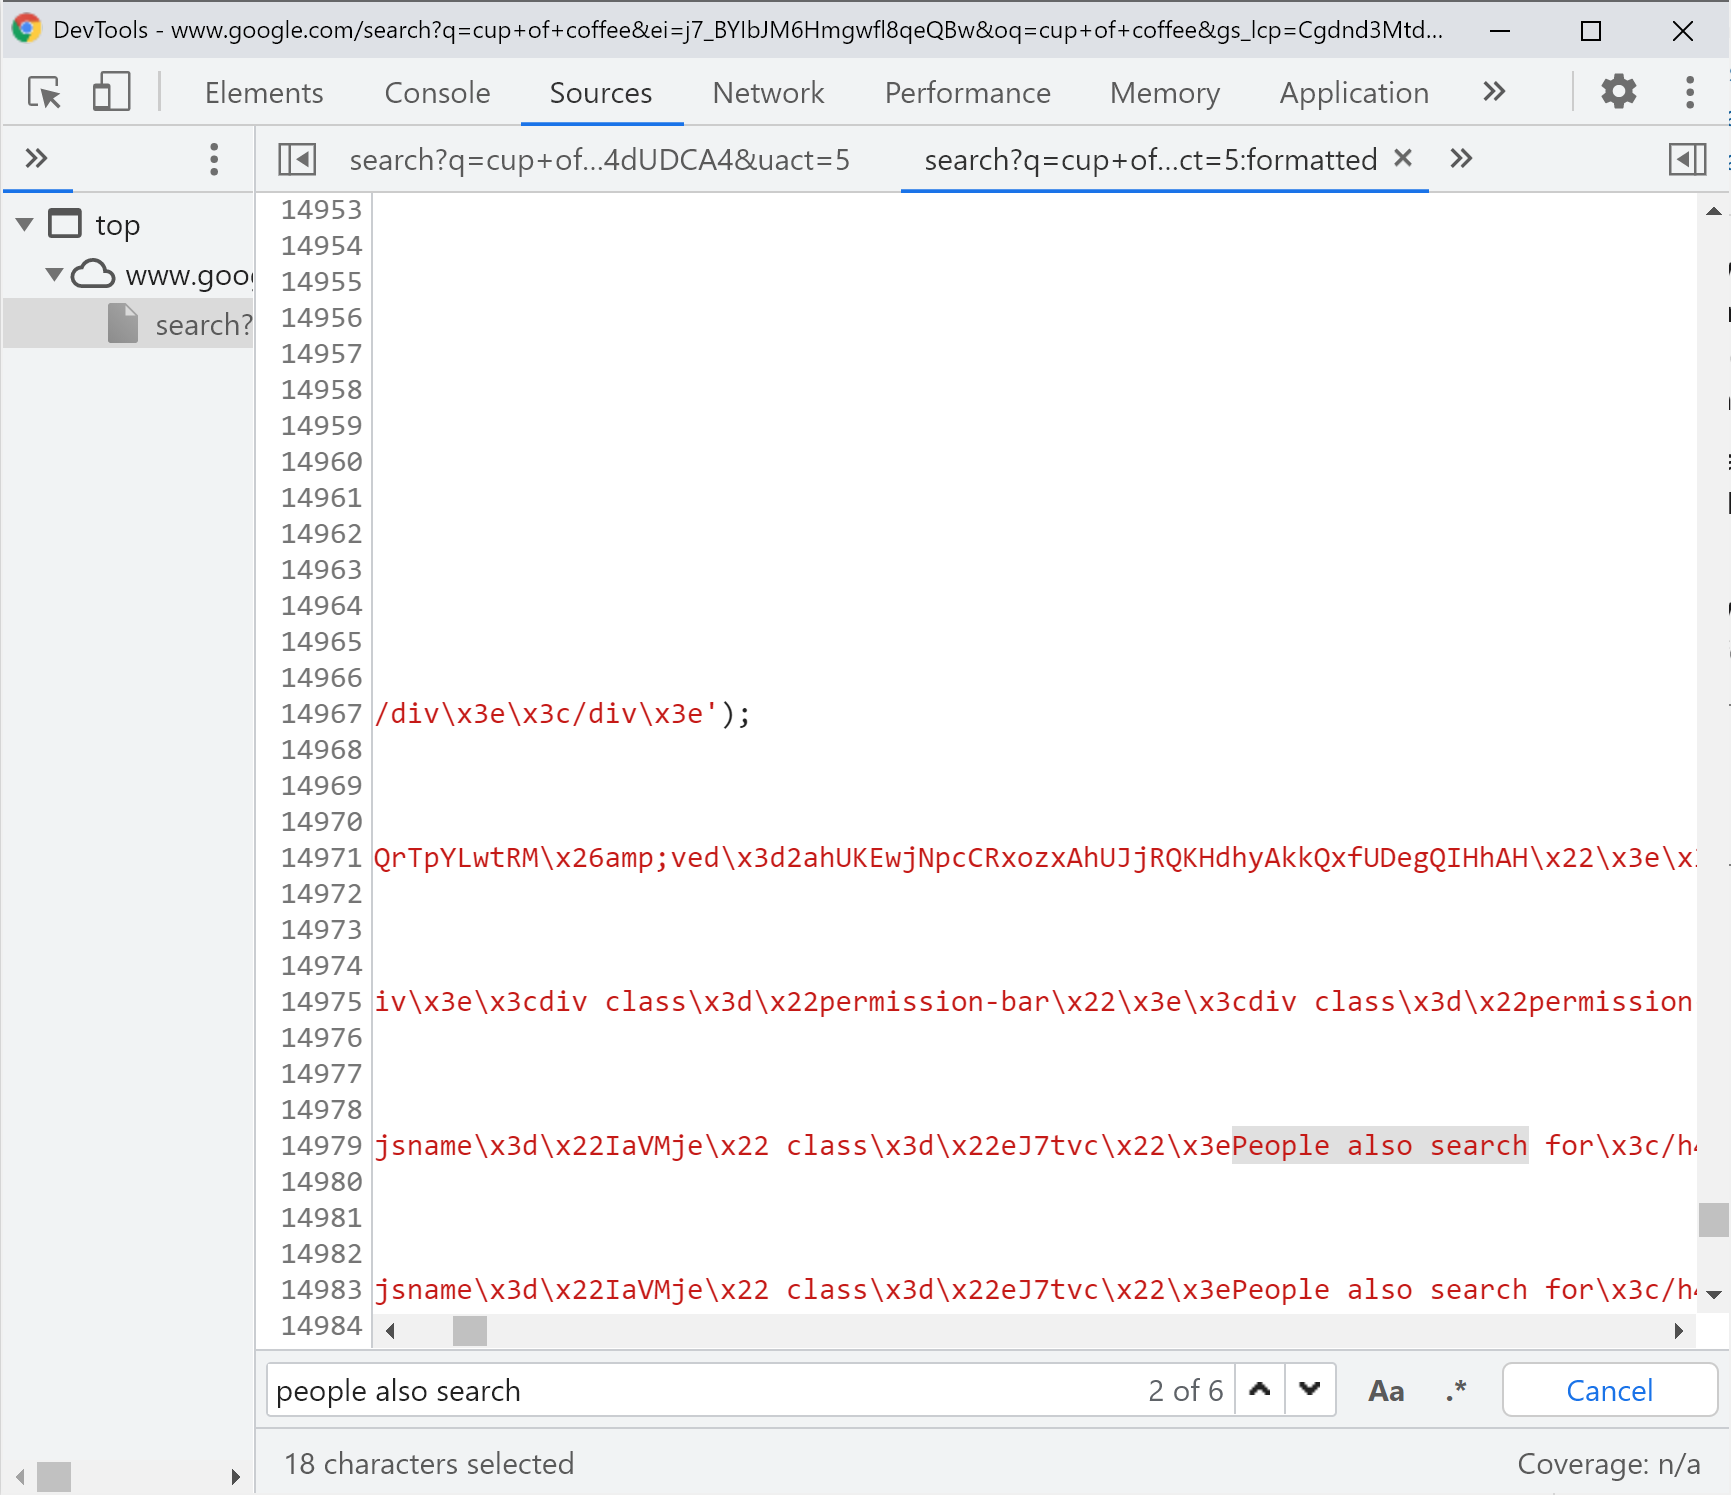 People also search - code already placed in the HTML ready for a return to the page.